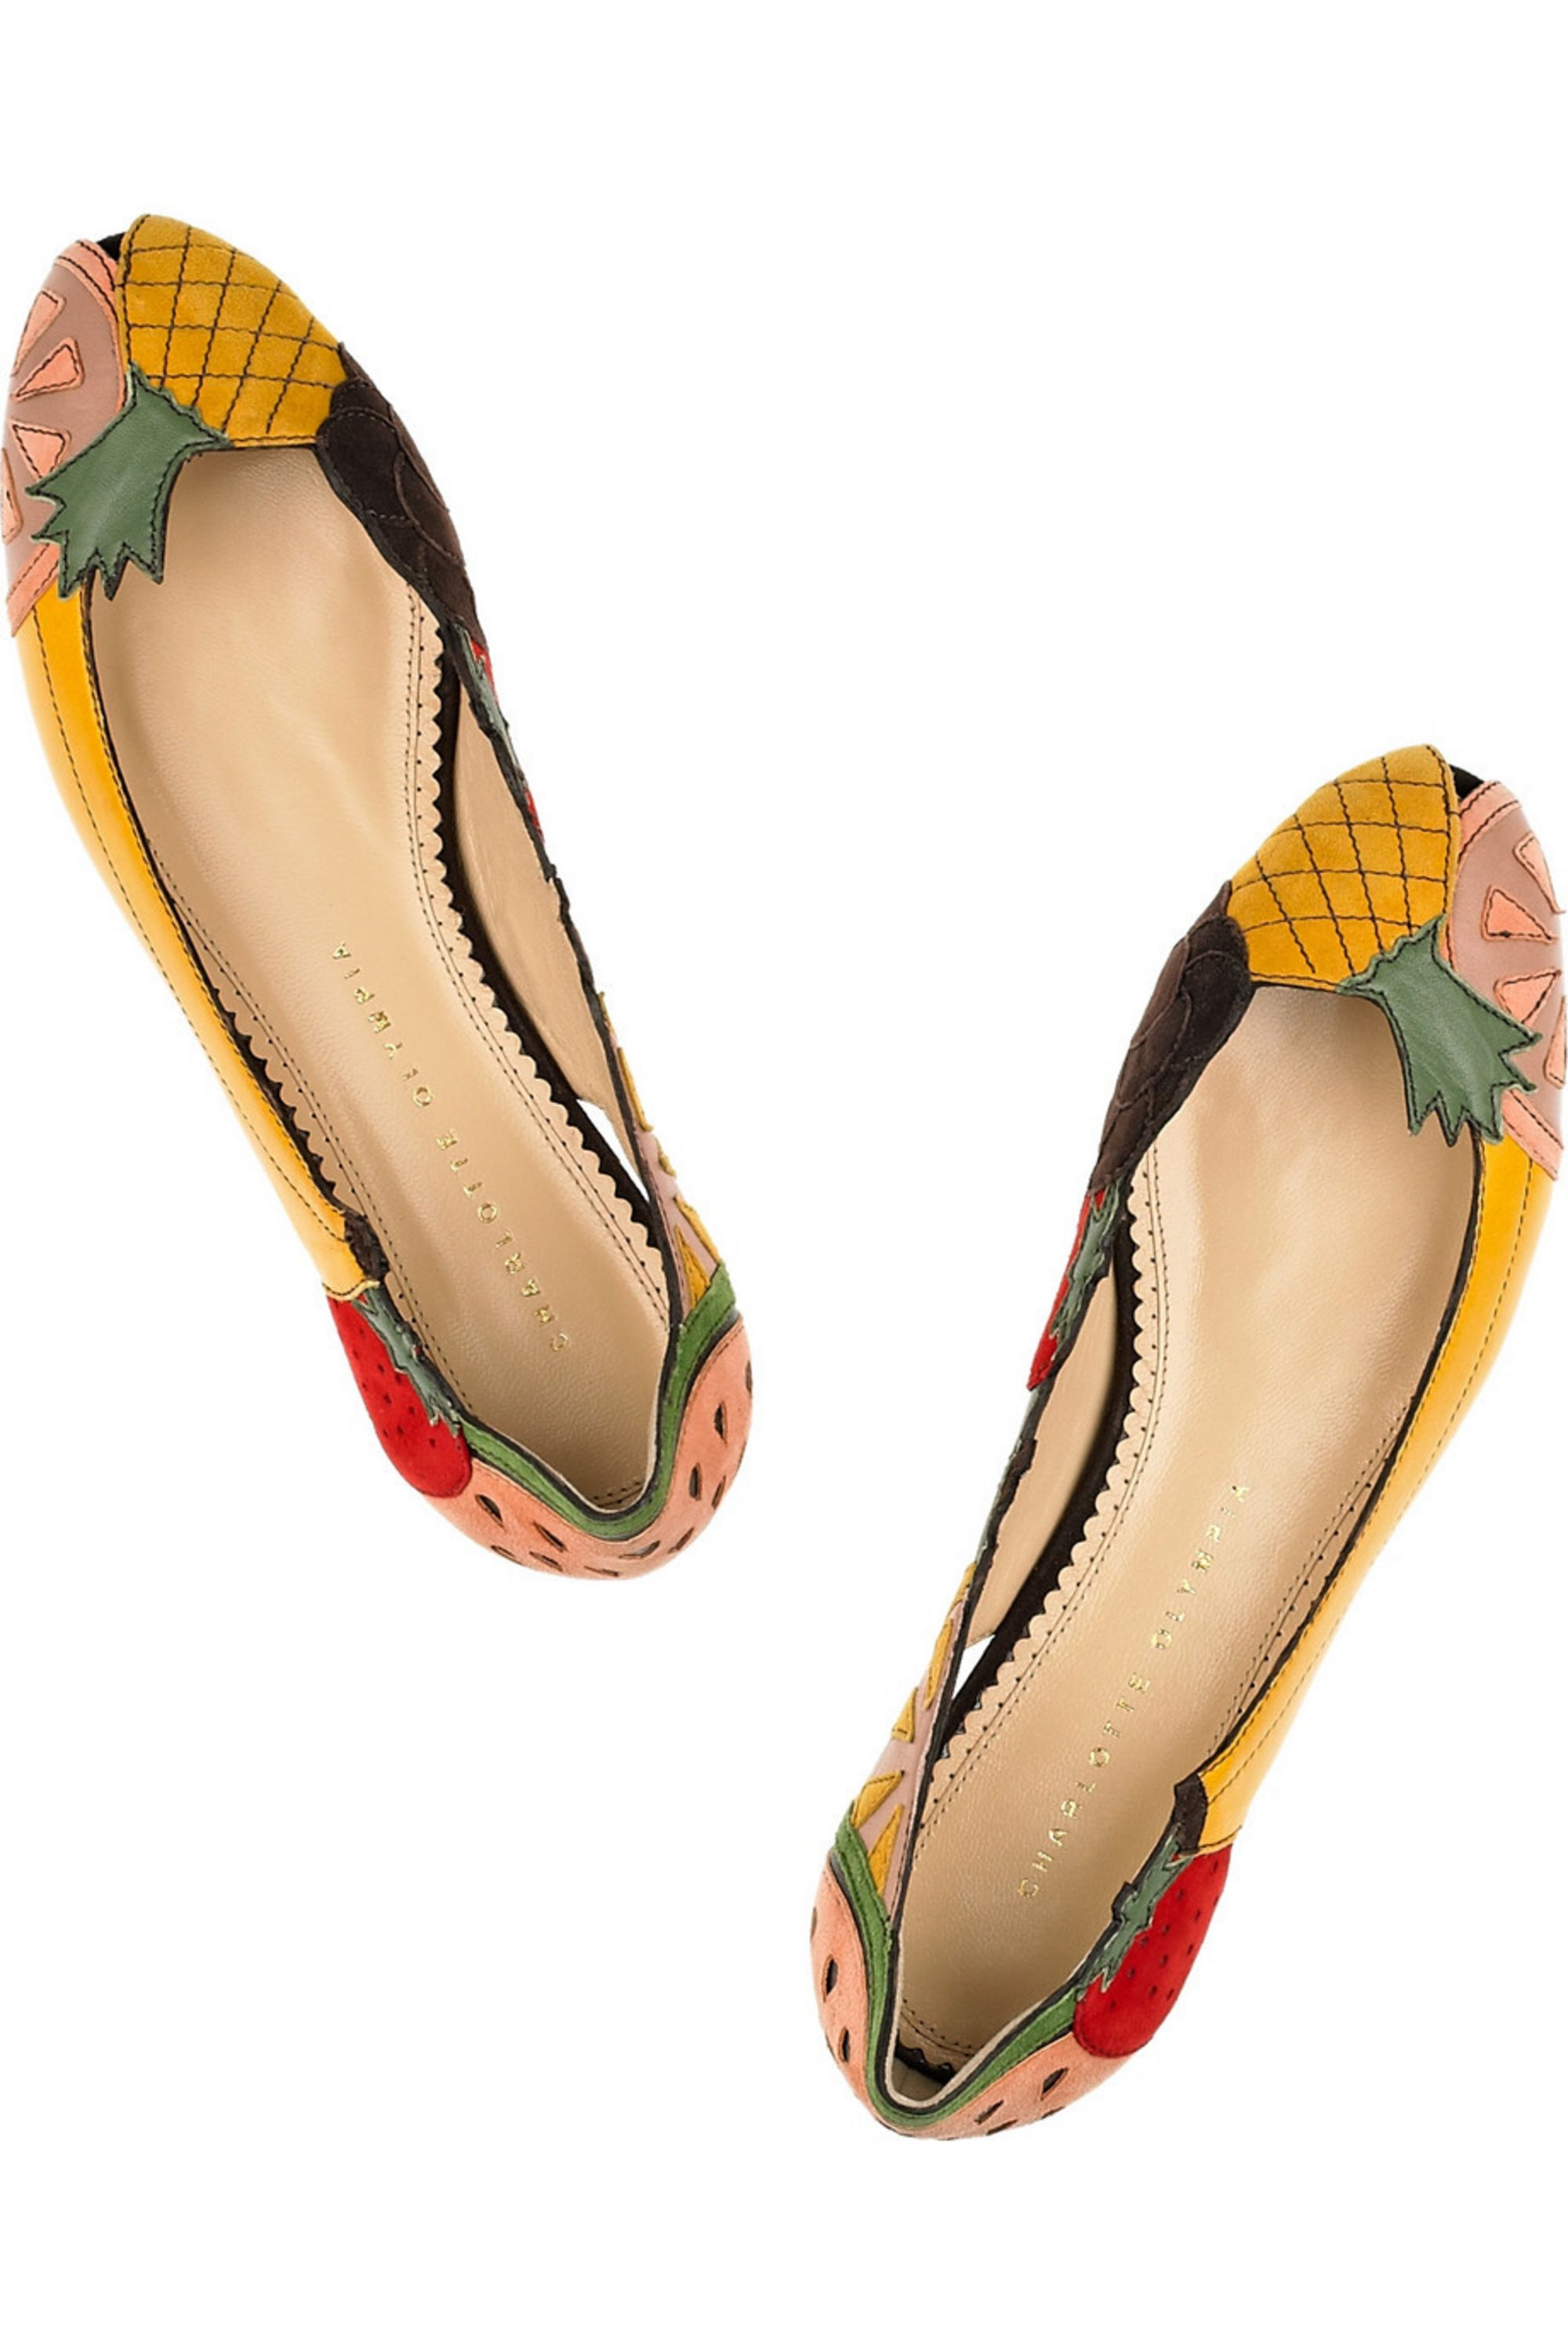 Charlotte Olympia Tutti Frutti leather and suede flats